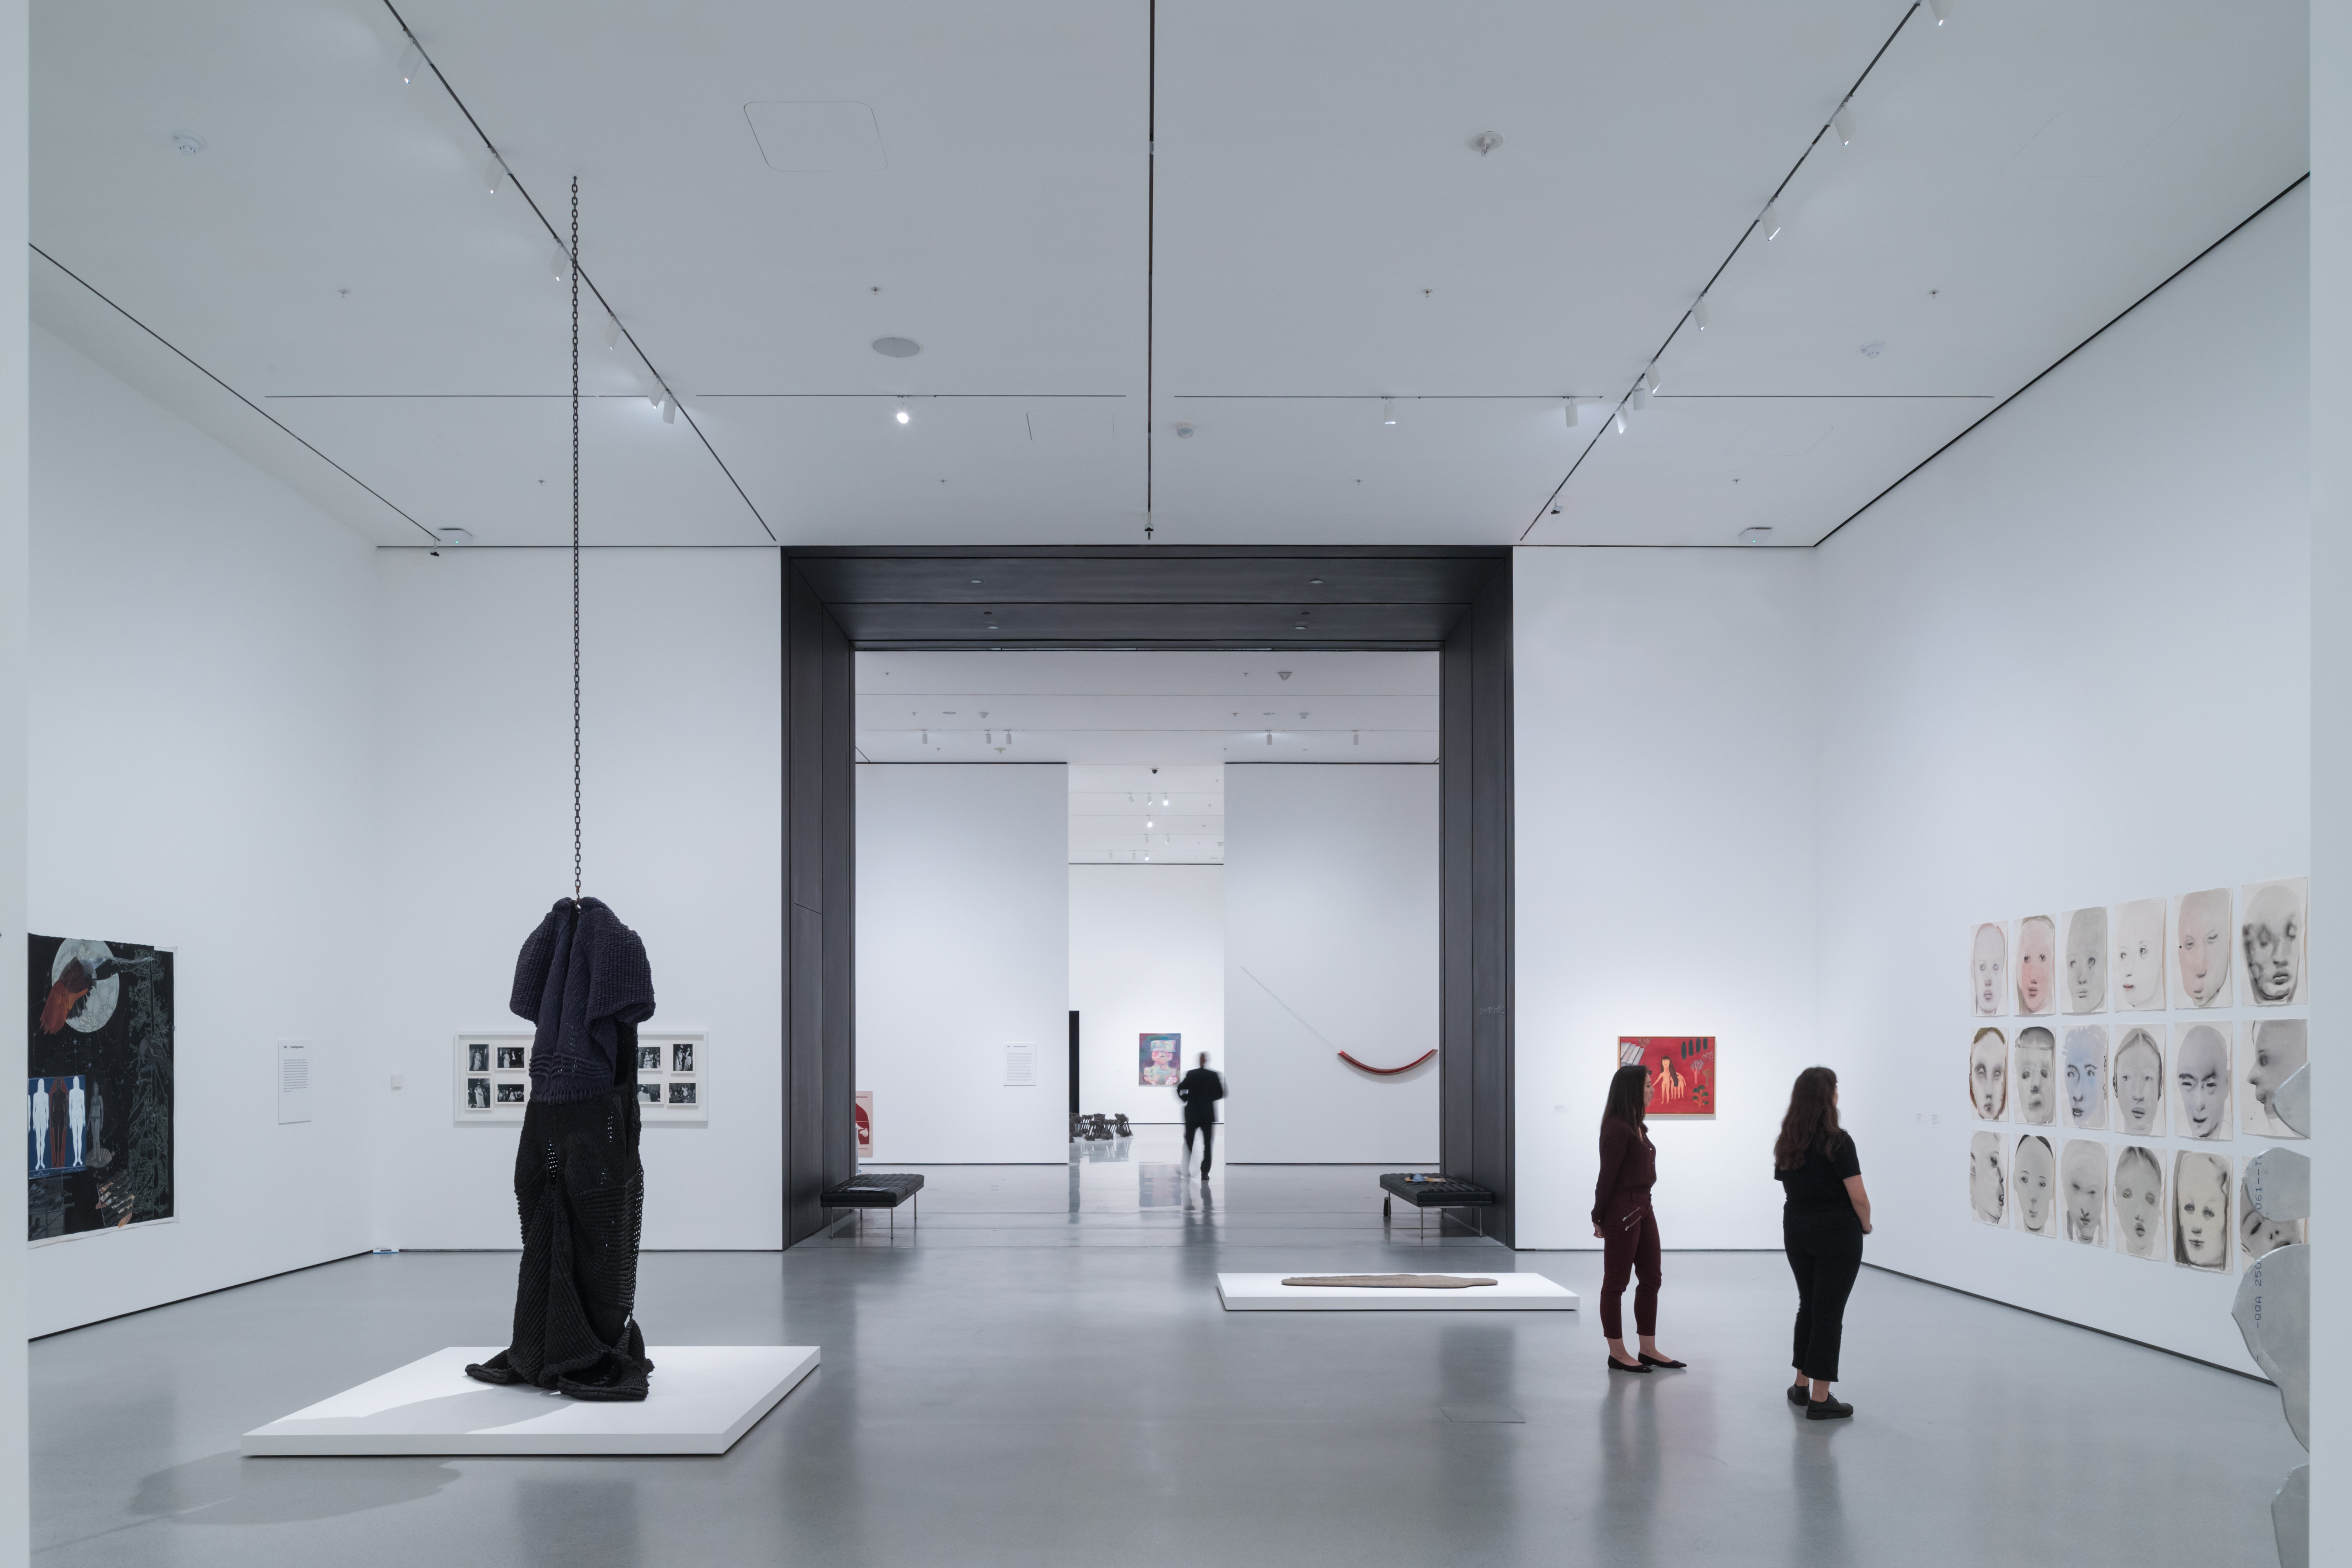 <p>MoMa Fase 2. Installation View of David Geffen Wing gallery 206, Transfigurations, The Museum of Modern Art<br /> With view of Blackened Steel Portal Beeld Iwan Baan. Courtesey of MoMa</p>